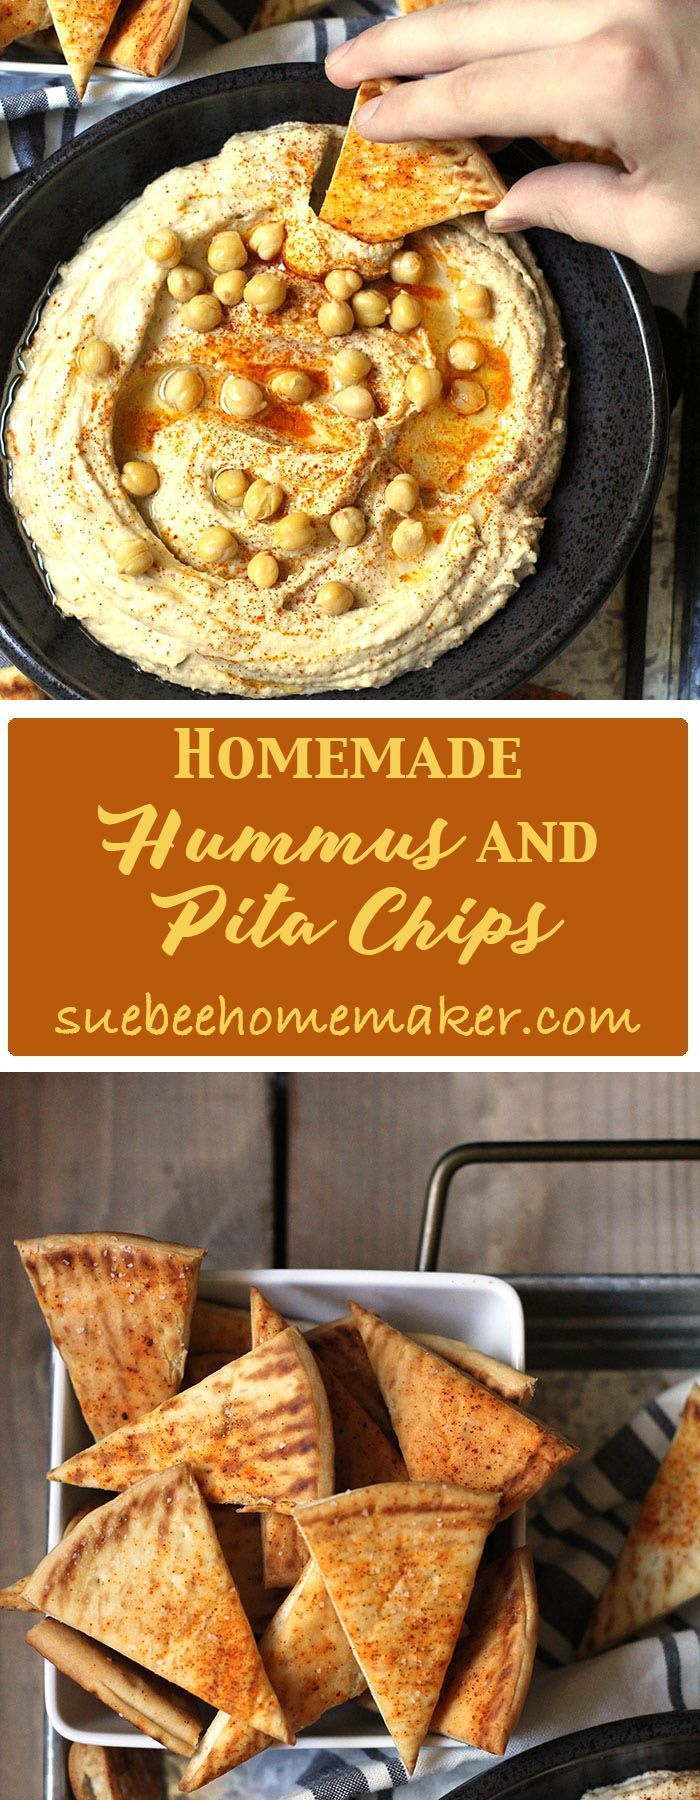 Homemade Hummus and Pita Chips makes a perfect party appetizer, or game day snack. Taking the skin off the chick peas takes some time, but so worth it!